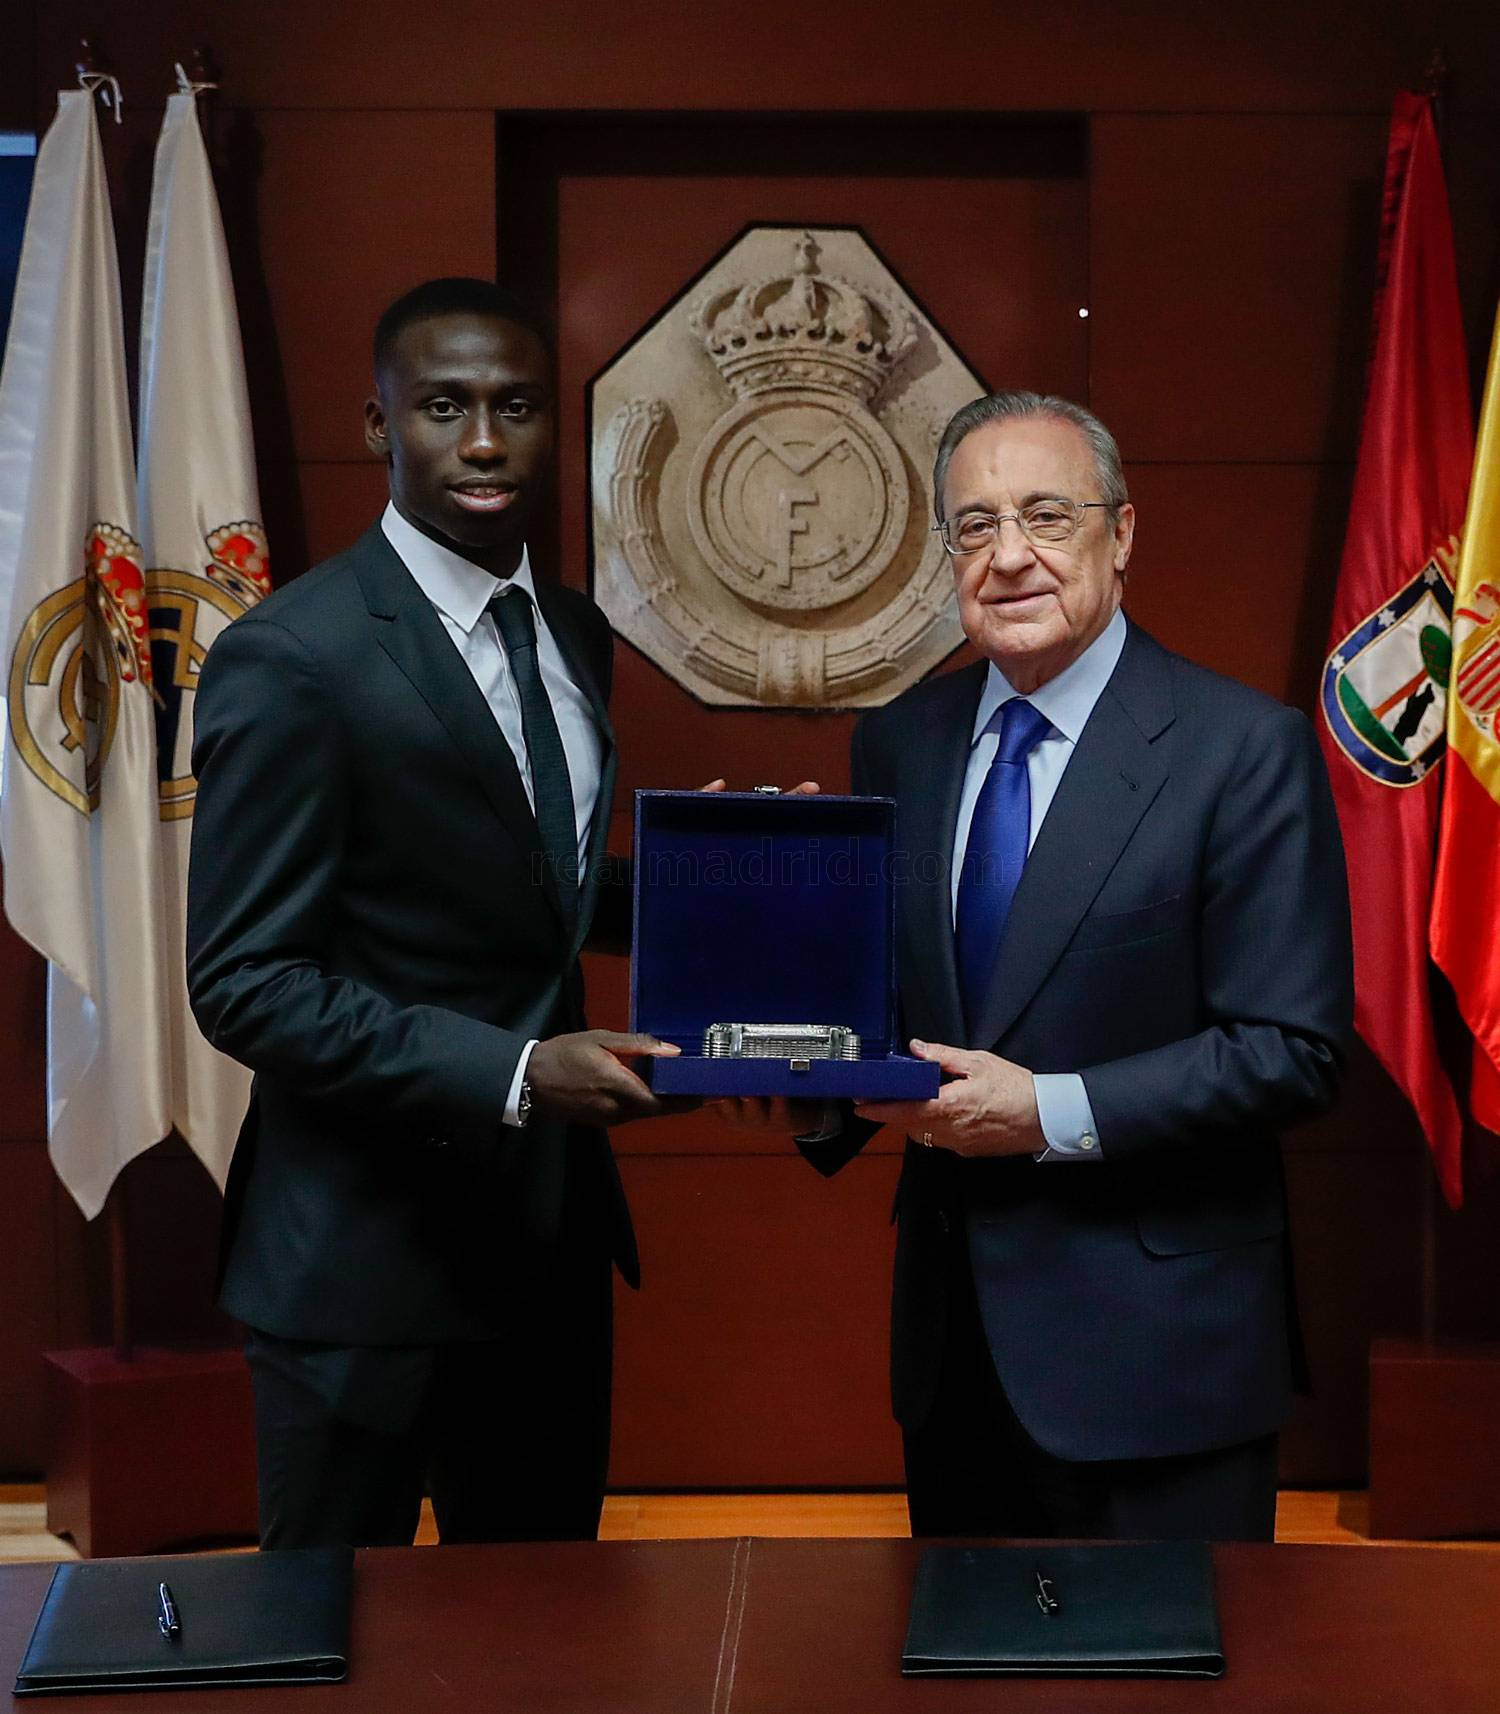 ¿Cuánto mide Ferland Mendy? - Real height _he19325_20190619013556